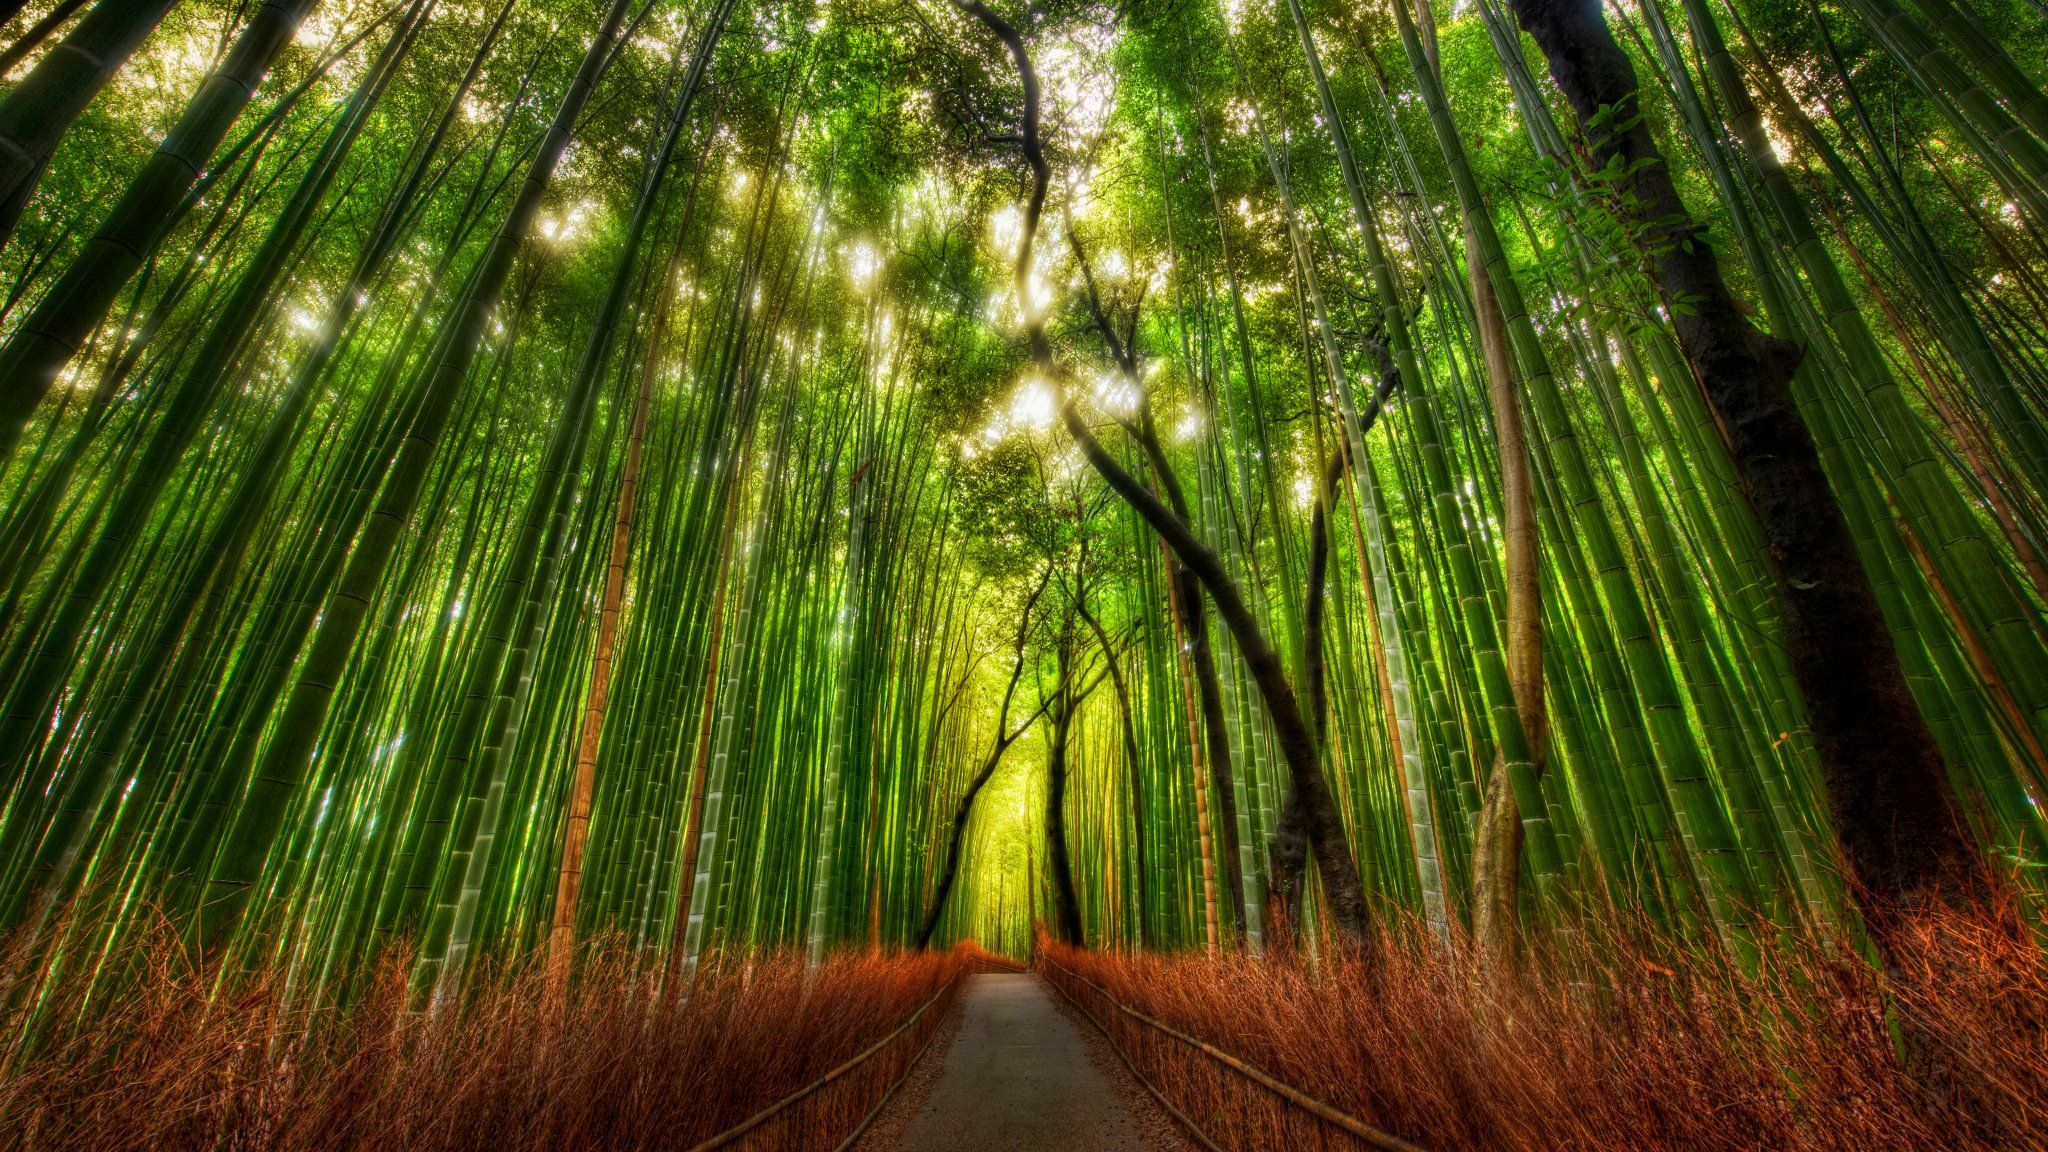 Download Free Bamboo Forest Kyoto Japan Desktop Wallpaper Hd For